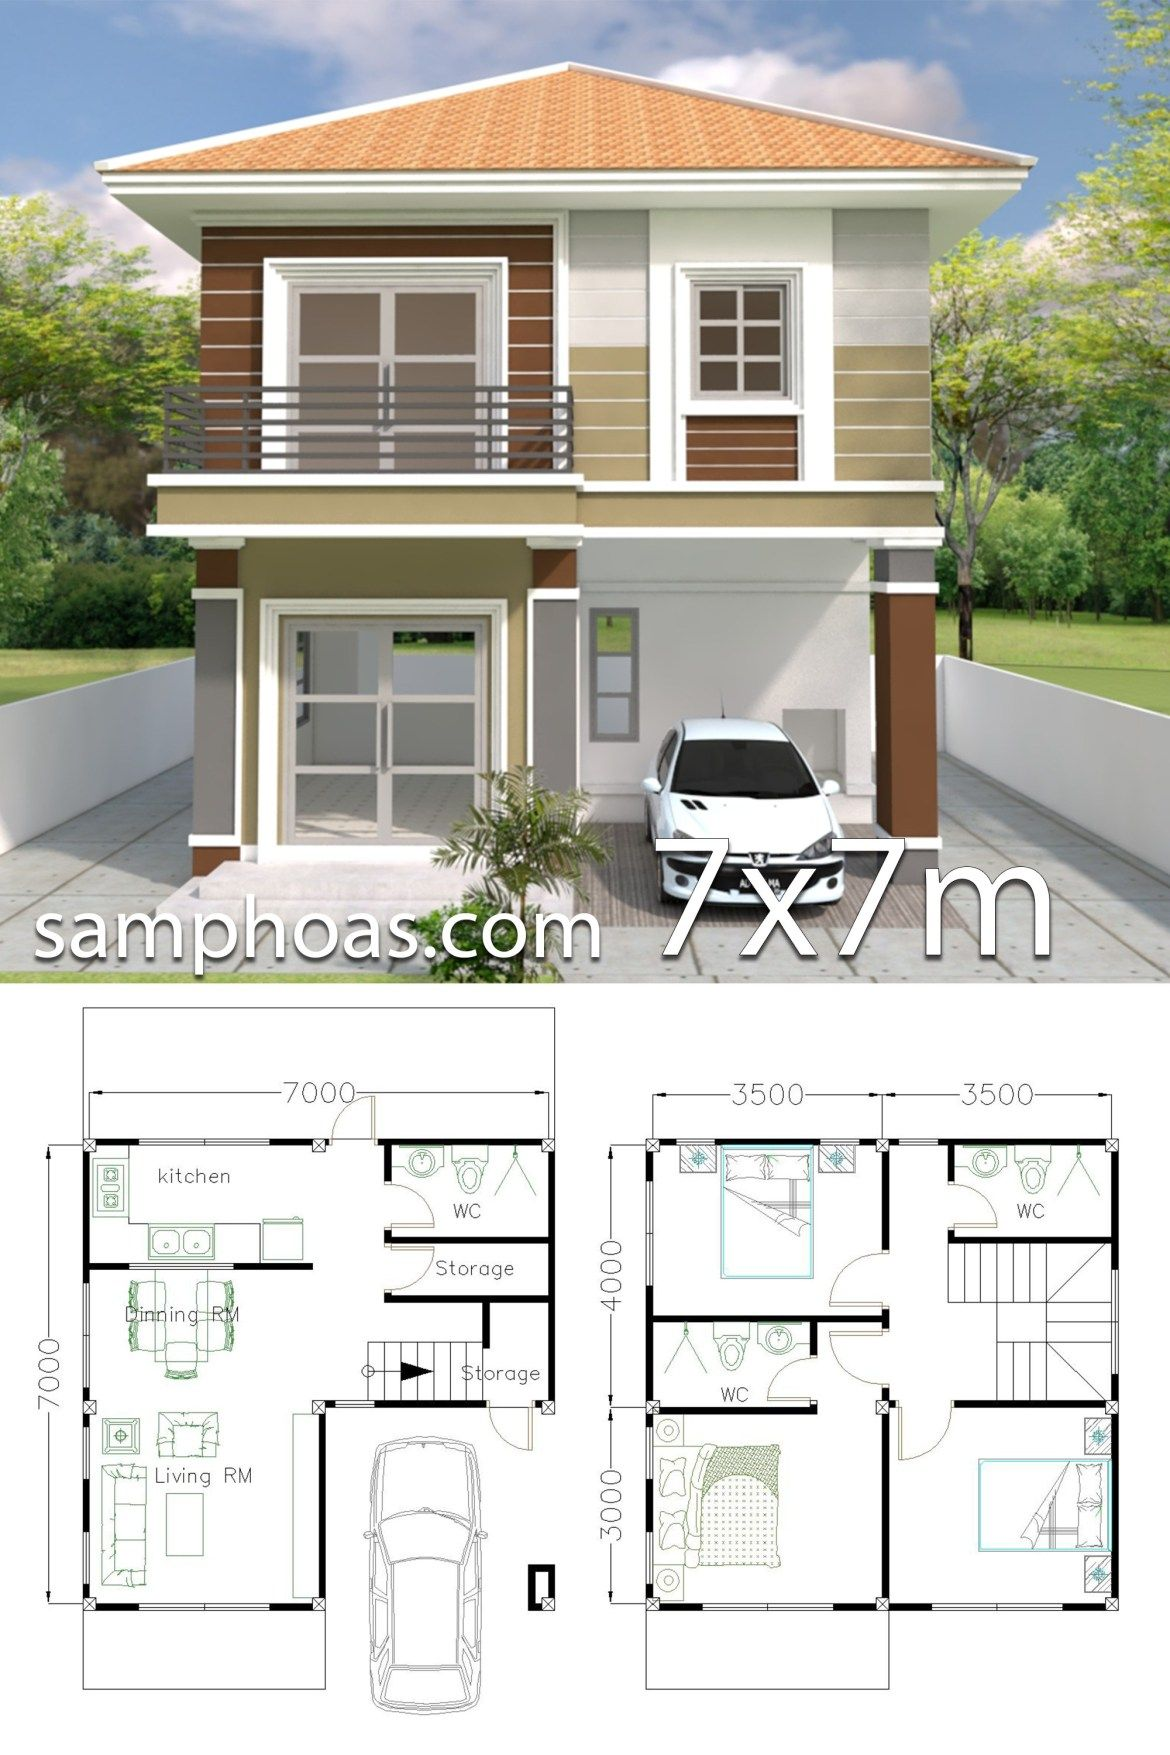 Home Design Plan 7x7m With 3 Bedrooms Samphoas Plansearch House Construction Plan Home Design Plan Home Design Floor Plans